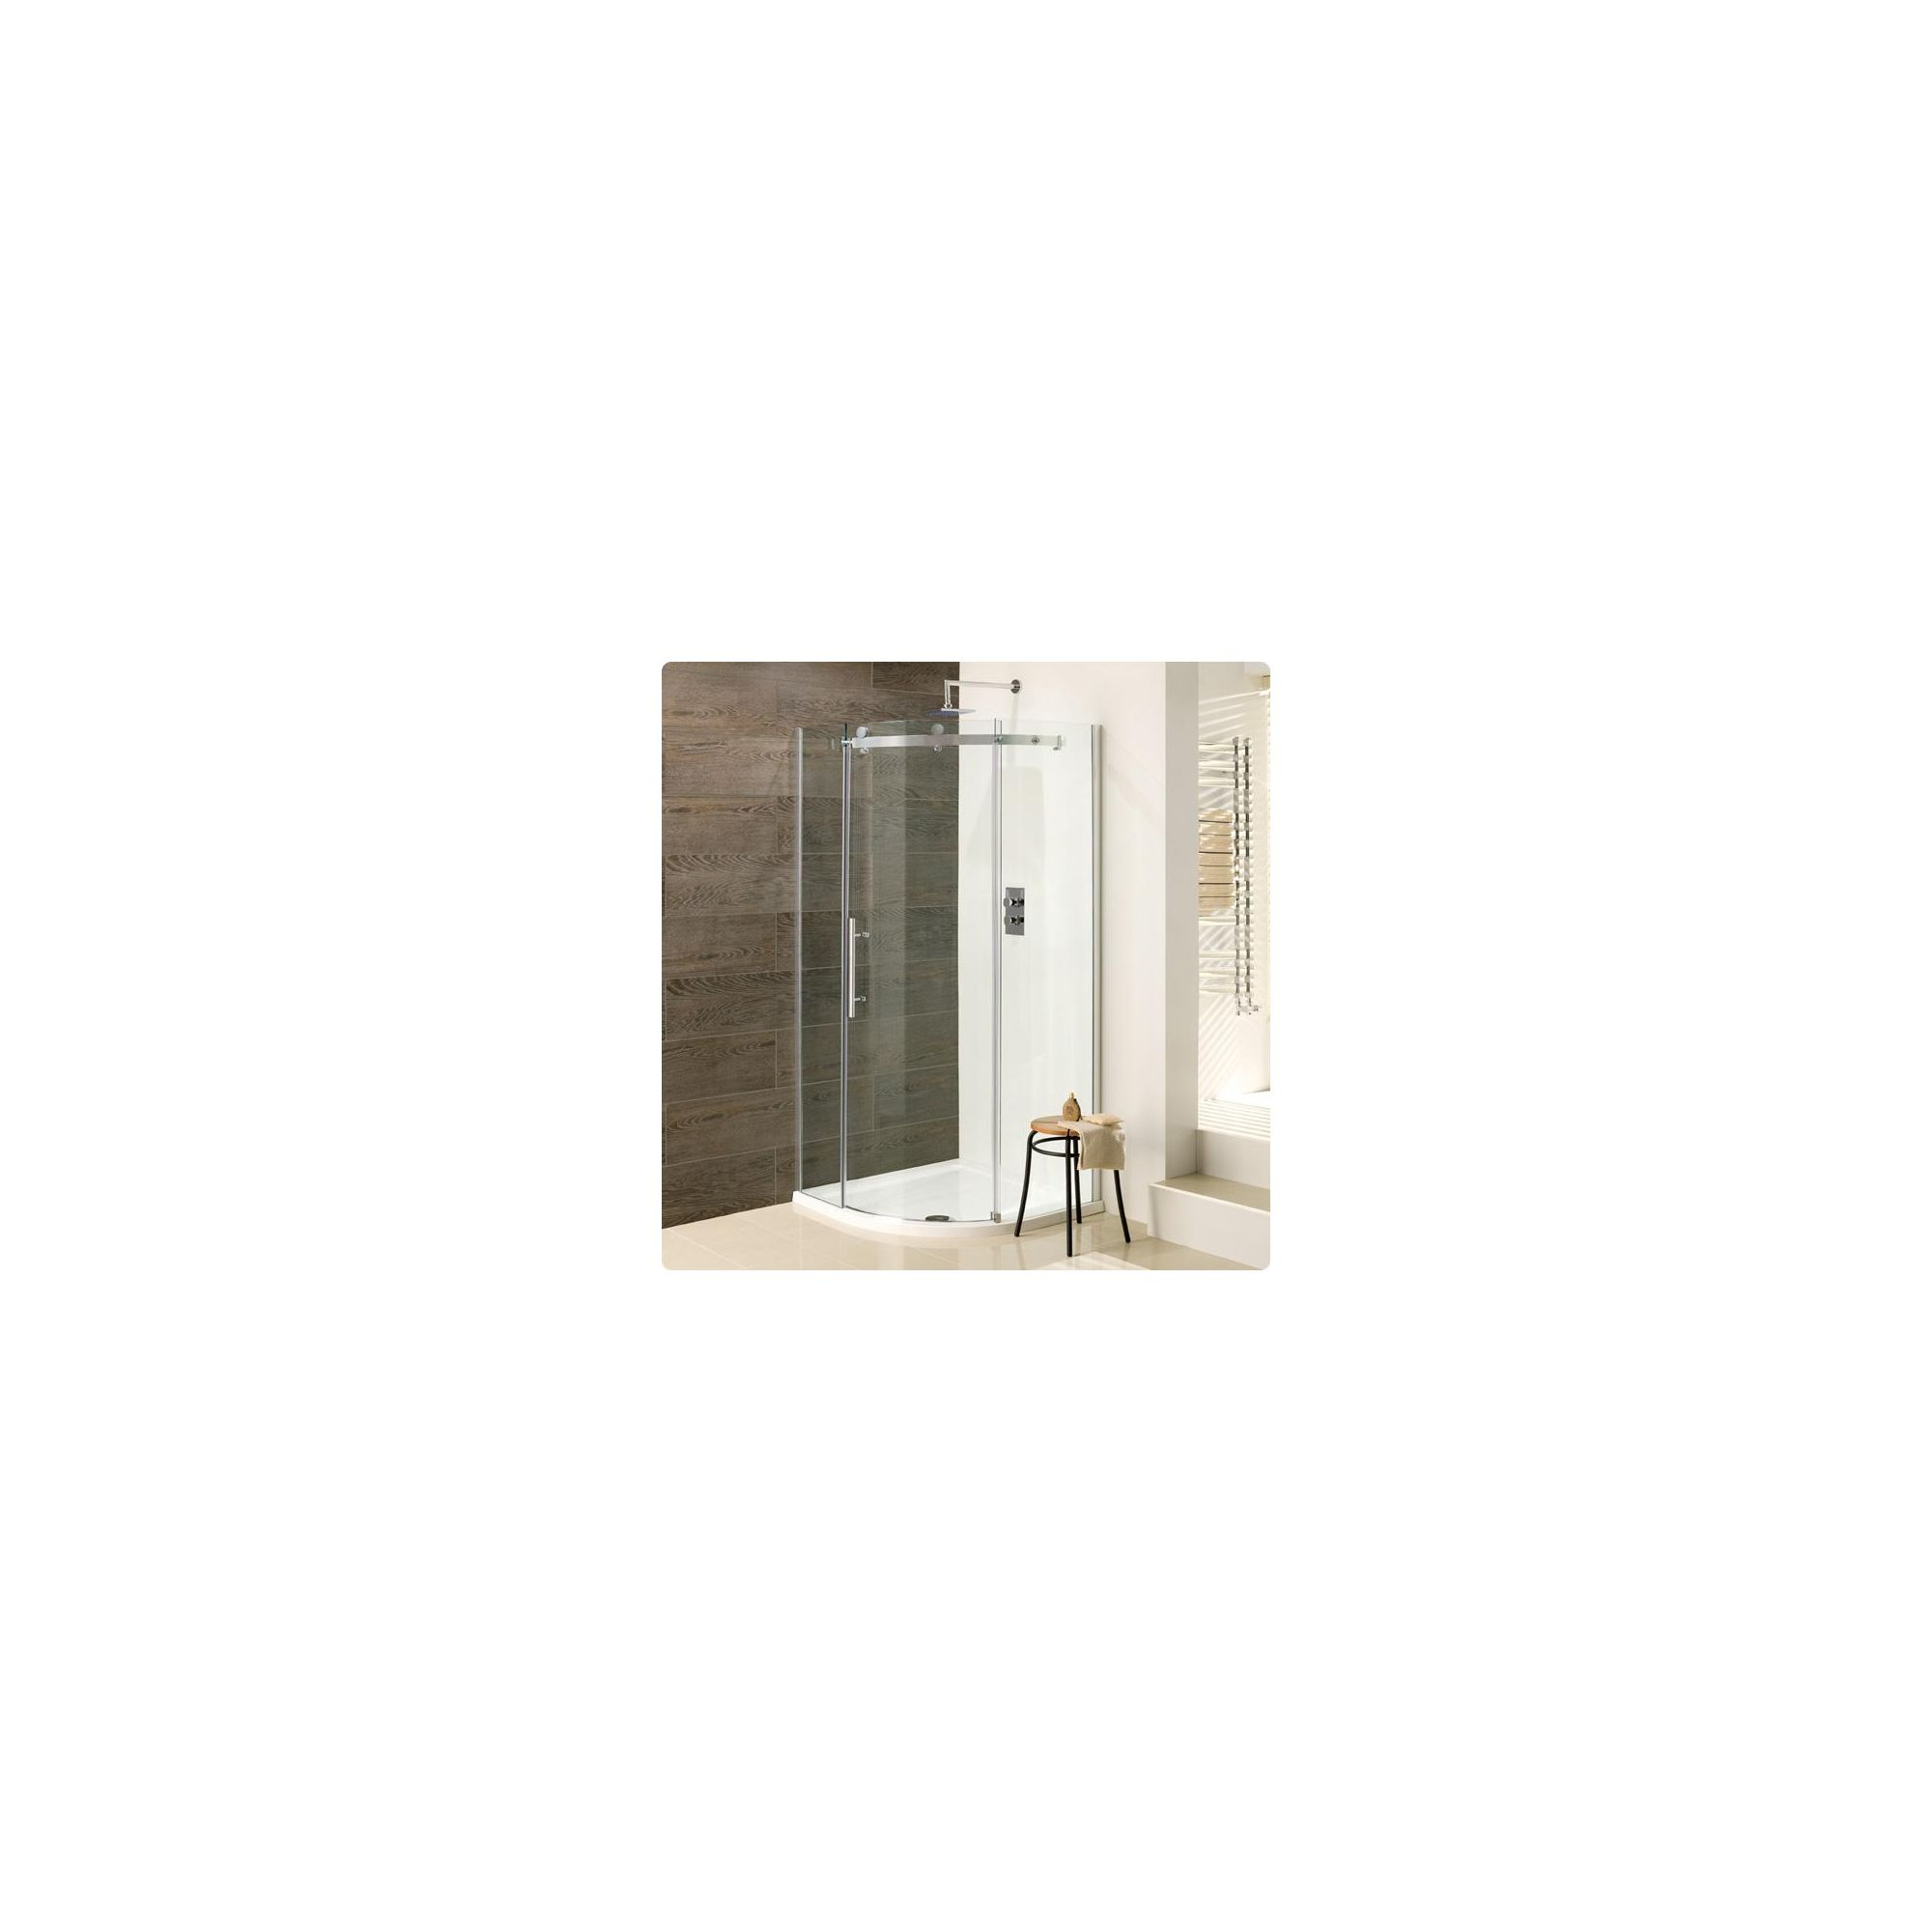 Duchy Deluxe Silver Quadrant Shower Enclosure 1000mm (Complete with Tray), 10mm Glass at Tesco Direct